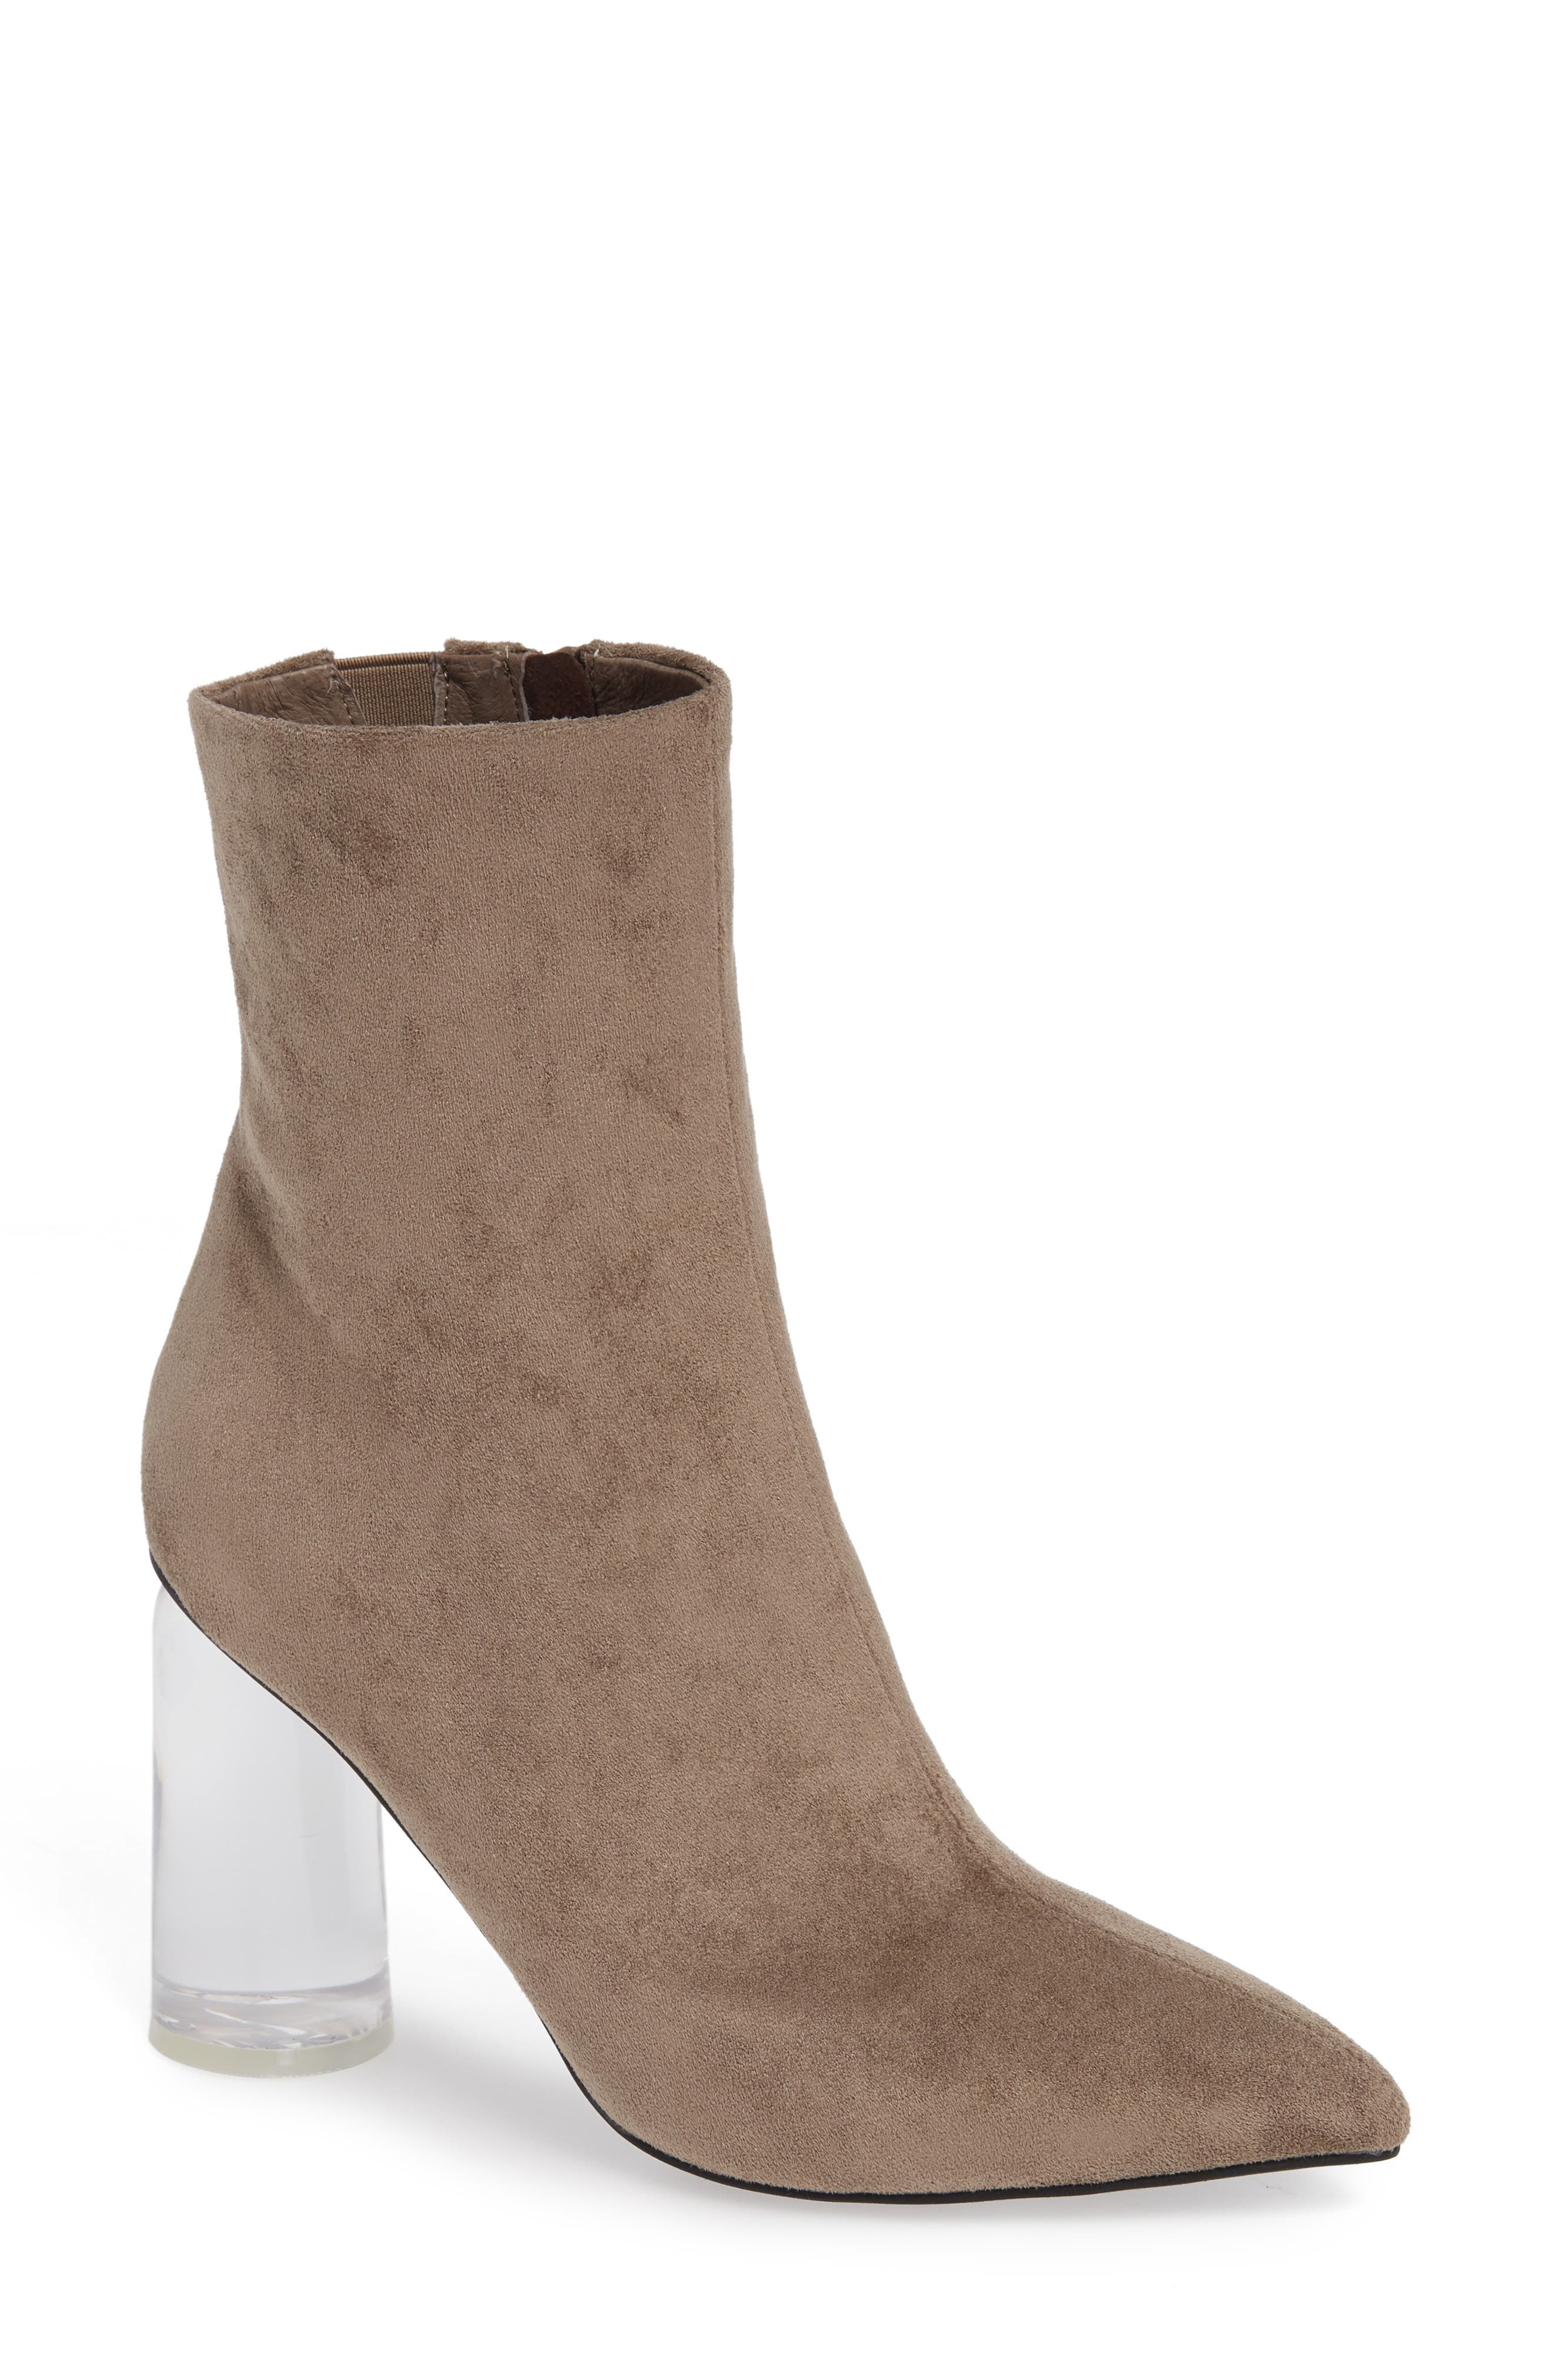 Lustful Bootie,                             Main thumbnail 1, color,                             TAUPE SUEDE